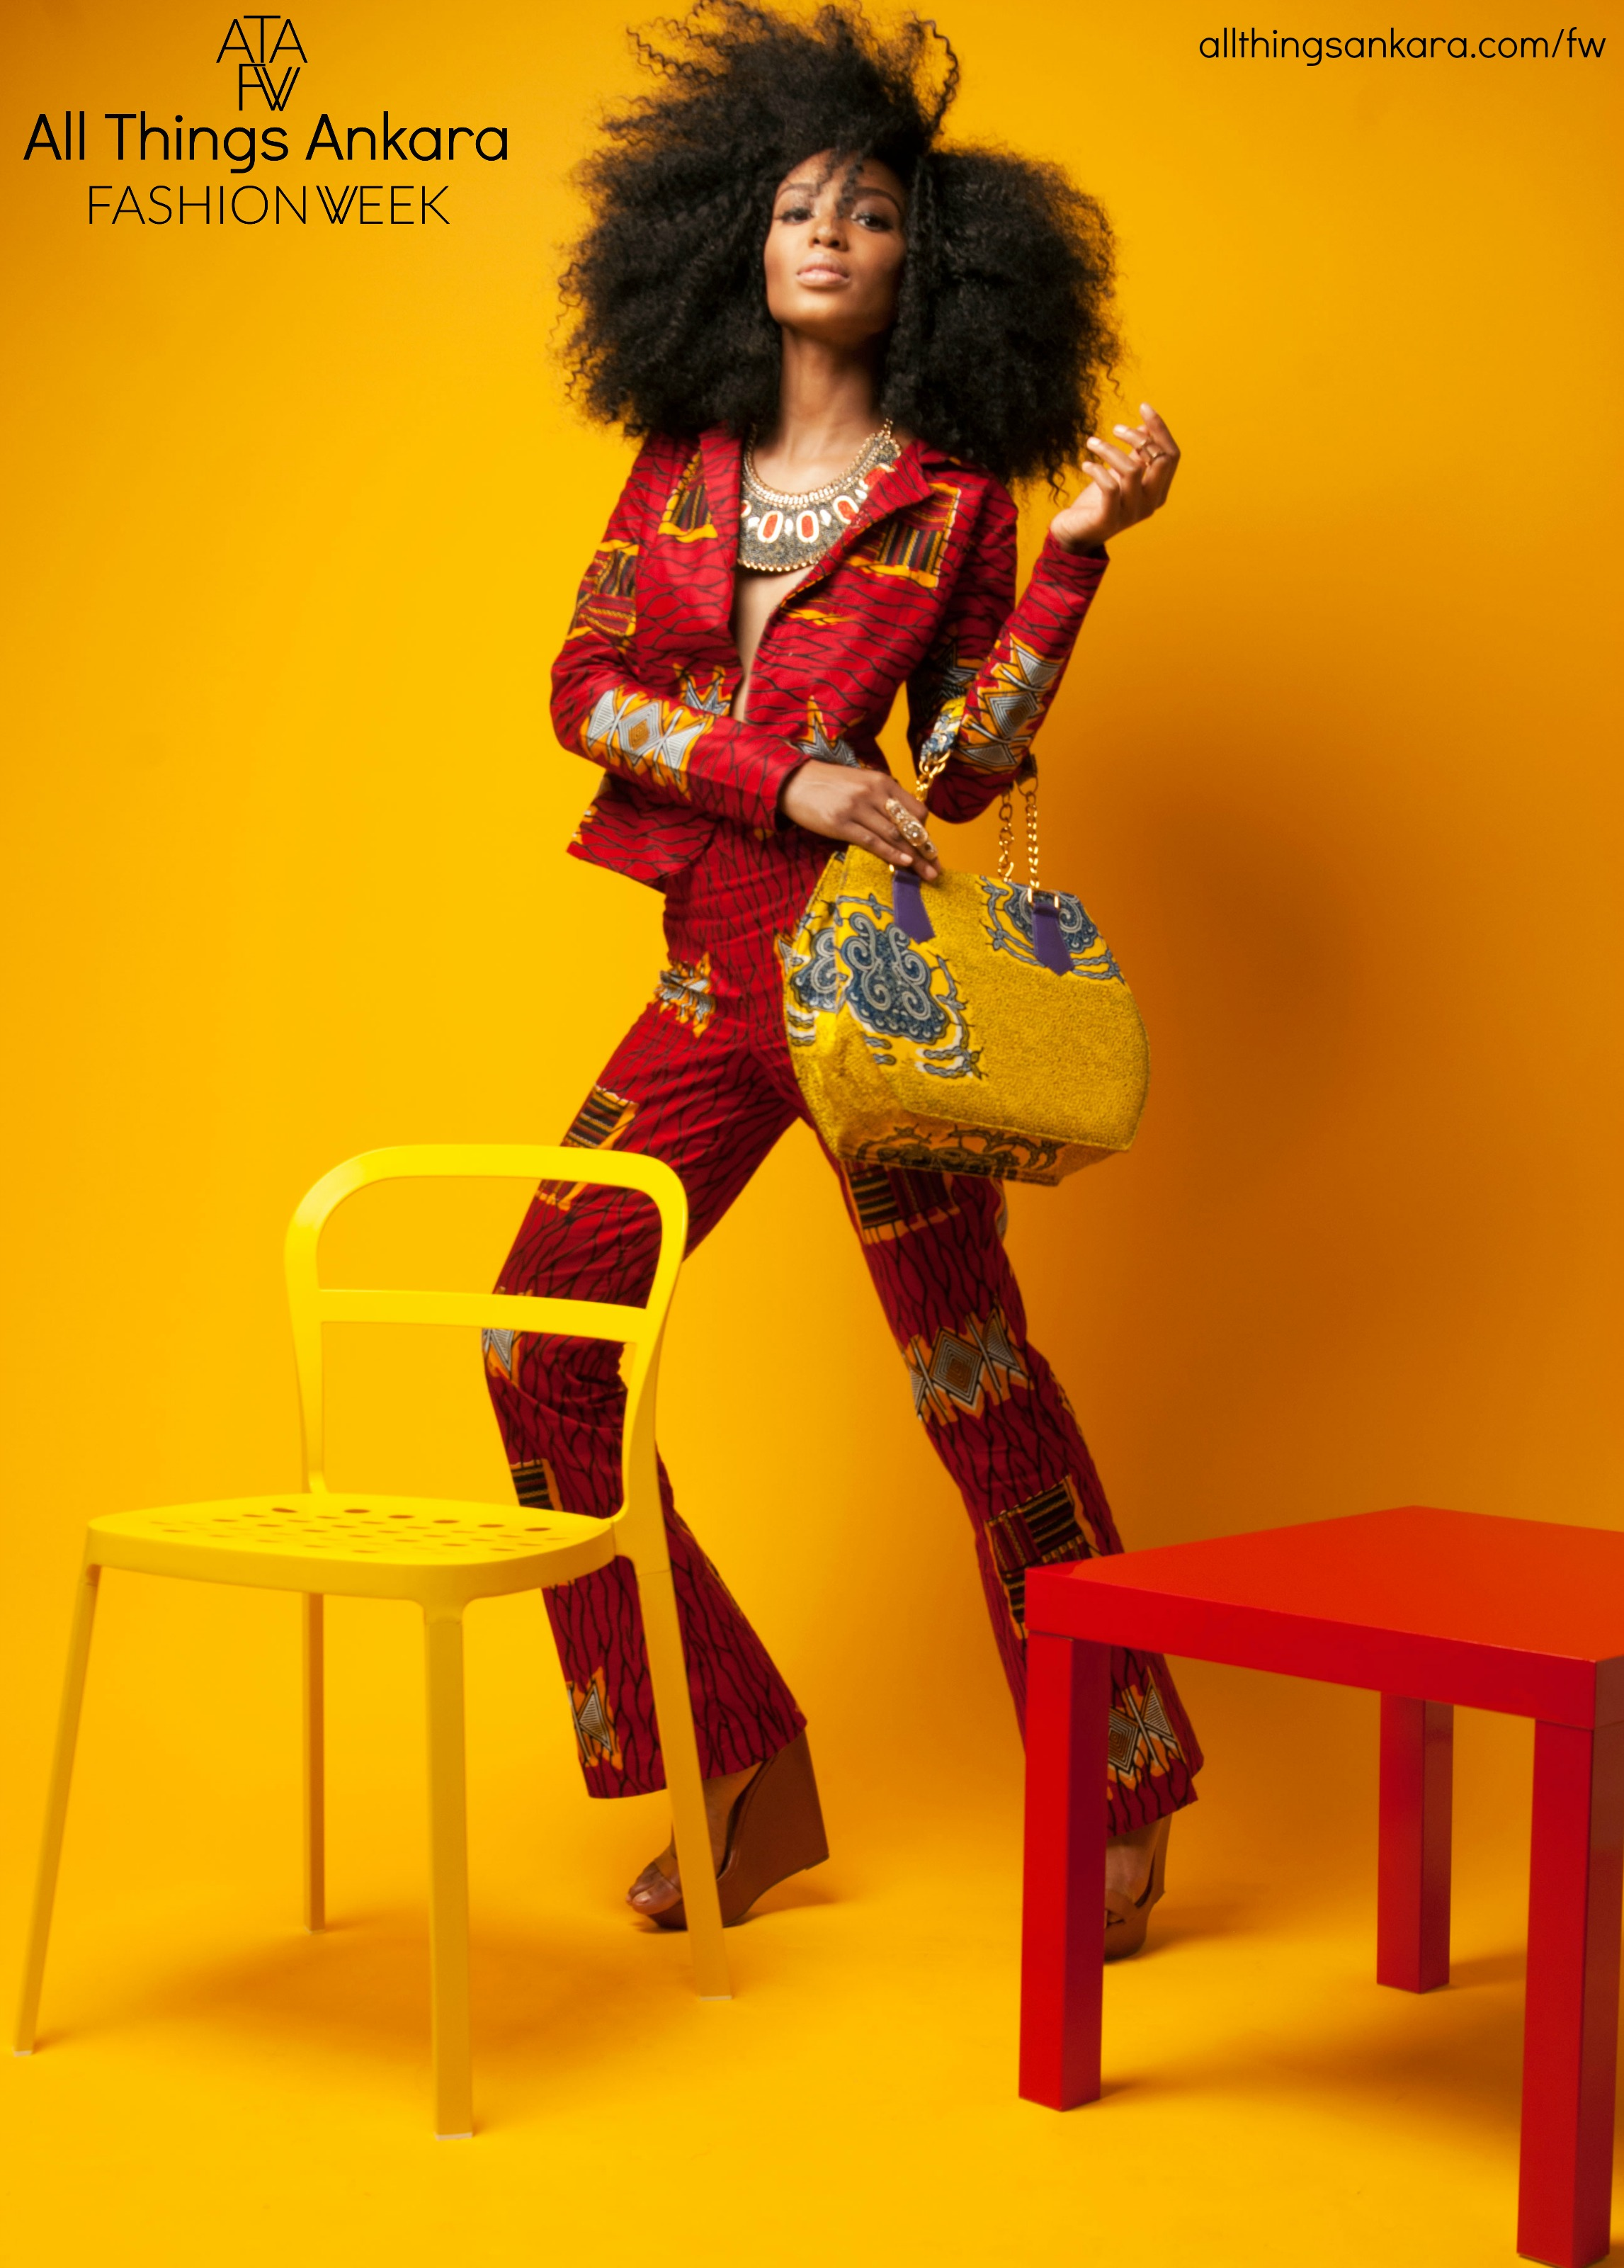 all-things-ankara-fashion-week-2015-campaign-2